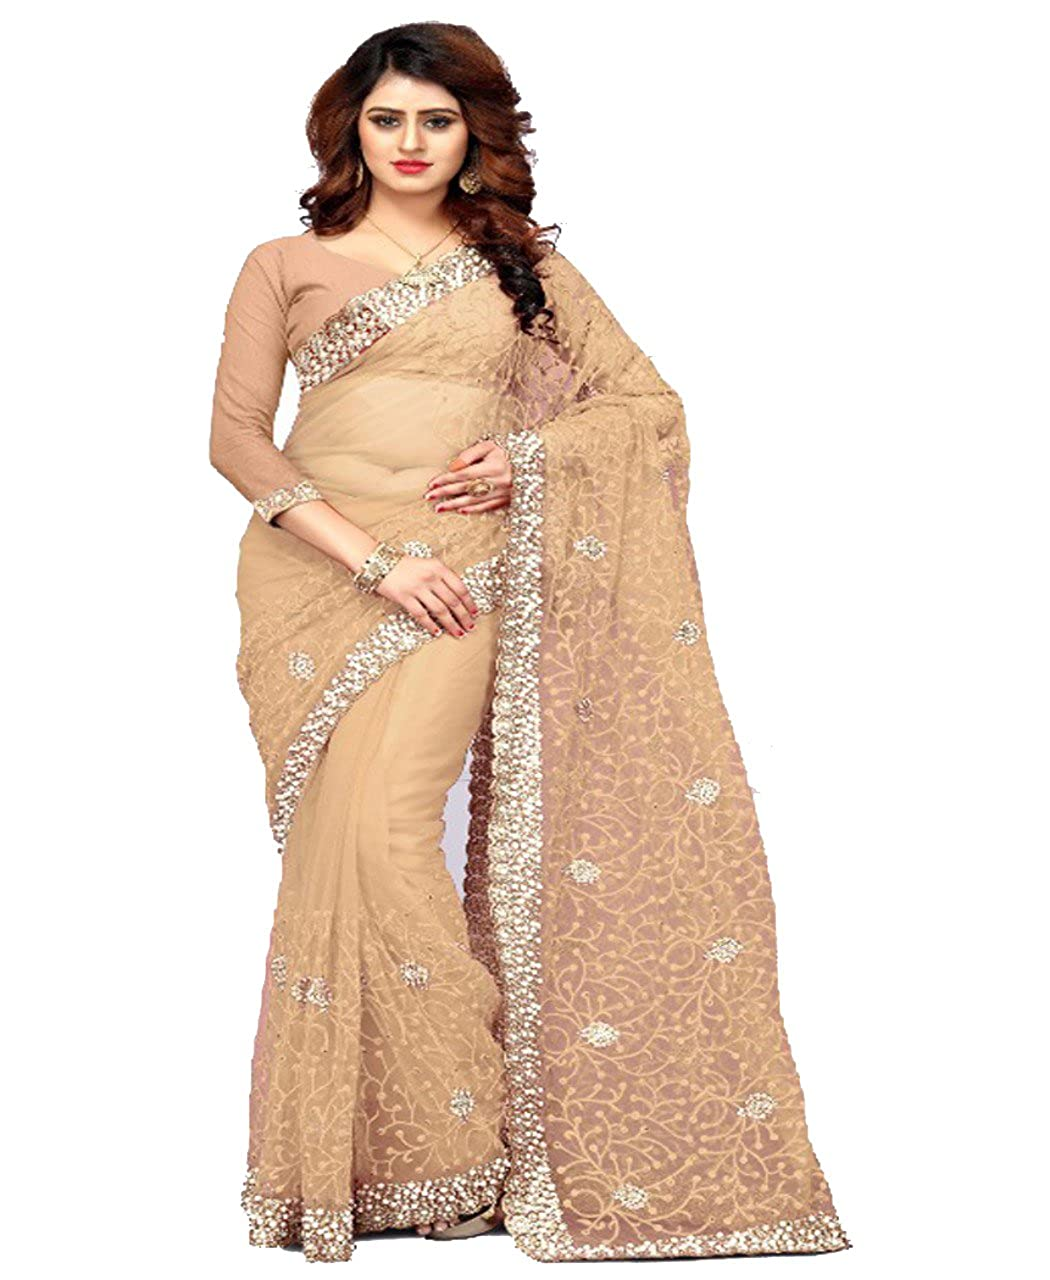 ed32c2c1bb8 Bollywood Craze Latest Designer Embroidery Saree New Arrival Collection  2018 For Special Women Party Wear With Blouse Piece  Amazon.in  Clothing    ...